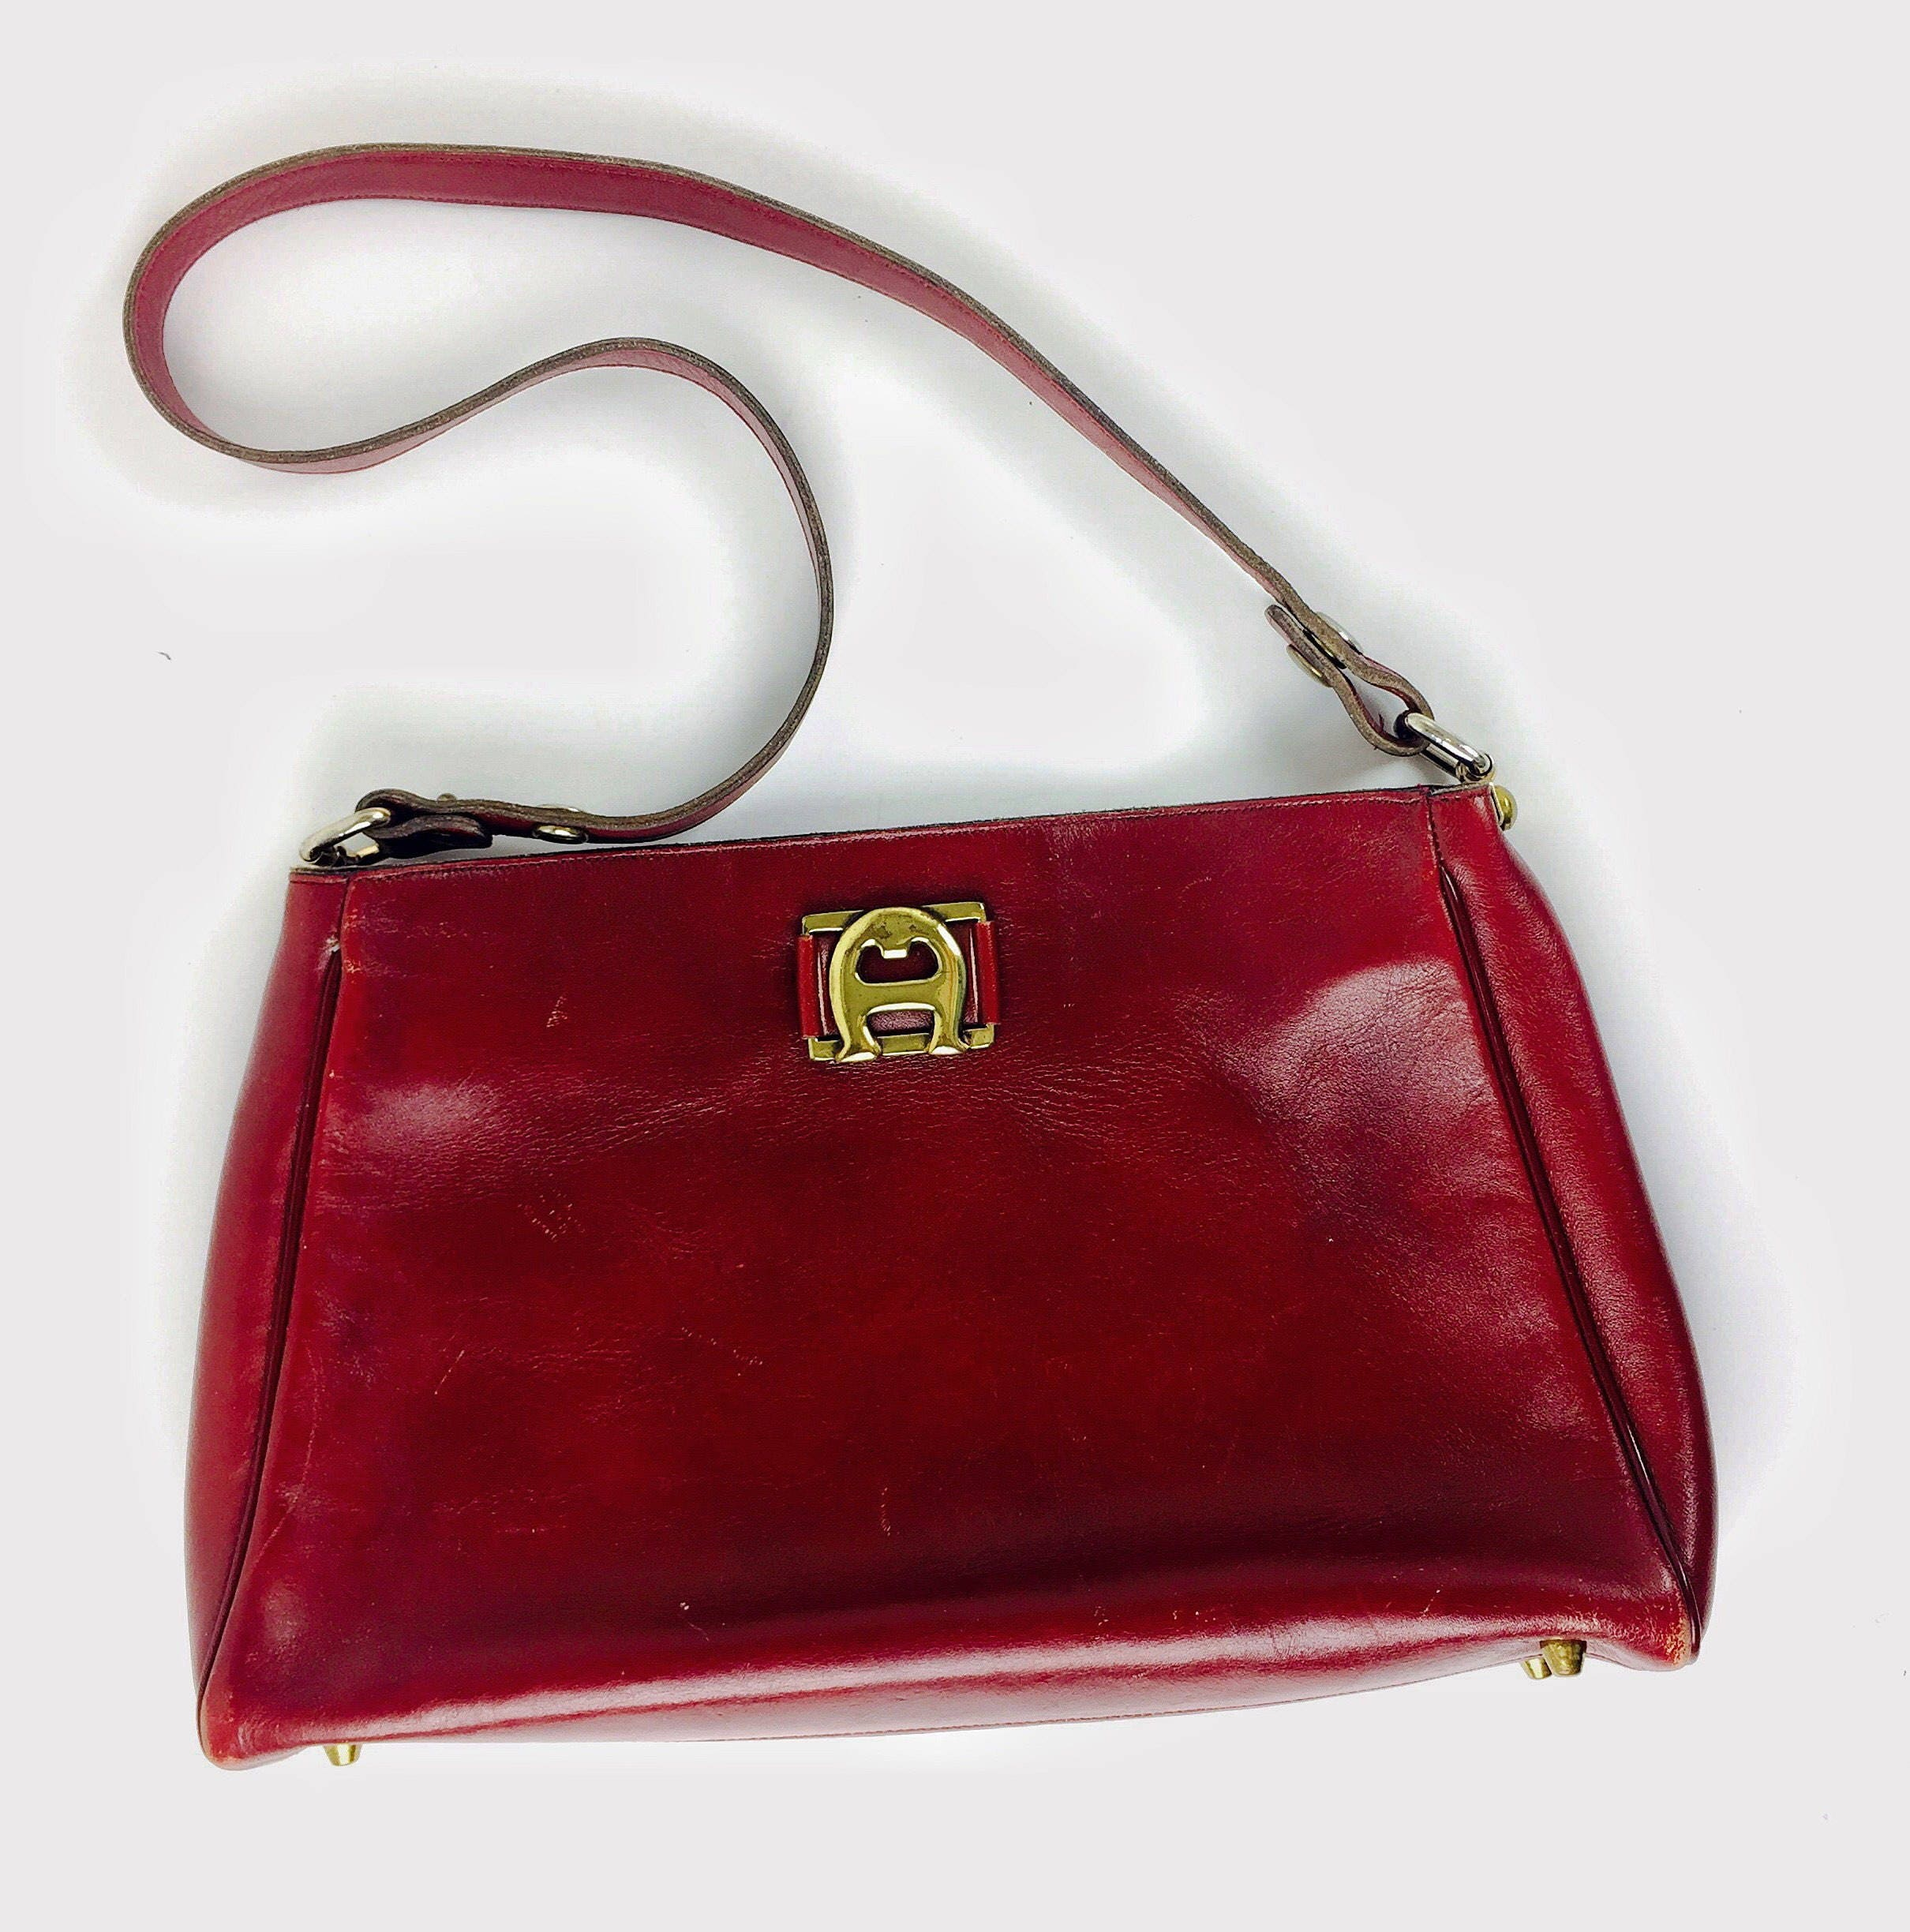 Vintage 60 s 70 s designer Etienne Aigner oxblood leather shoulder bag. 1 2f29a36fe63a8